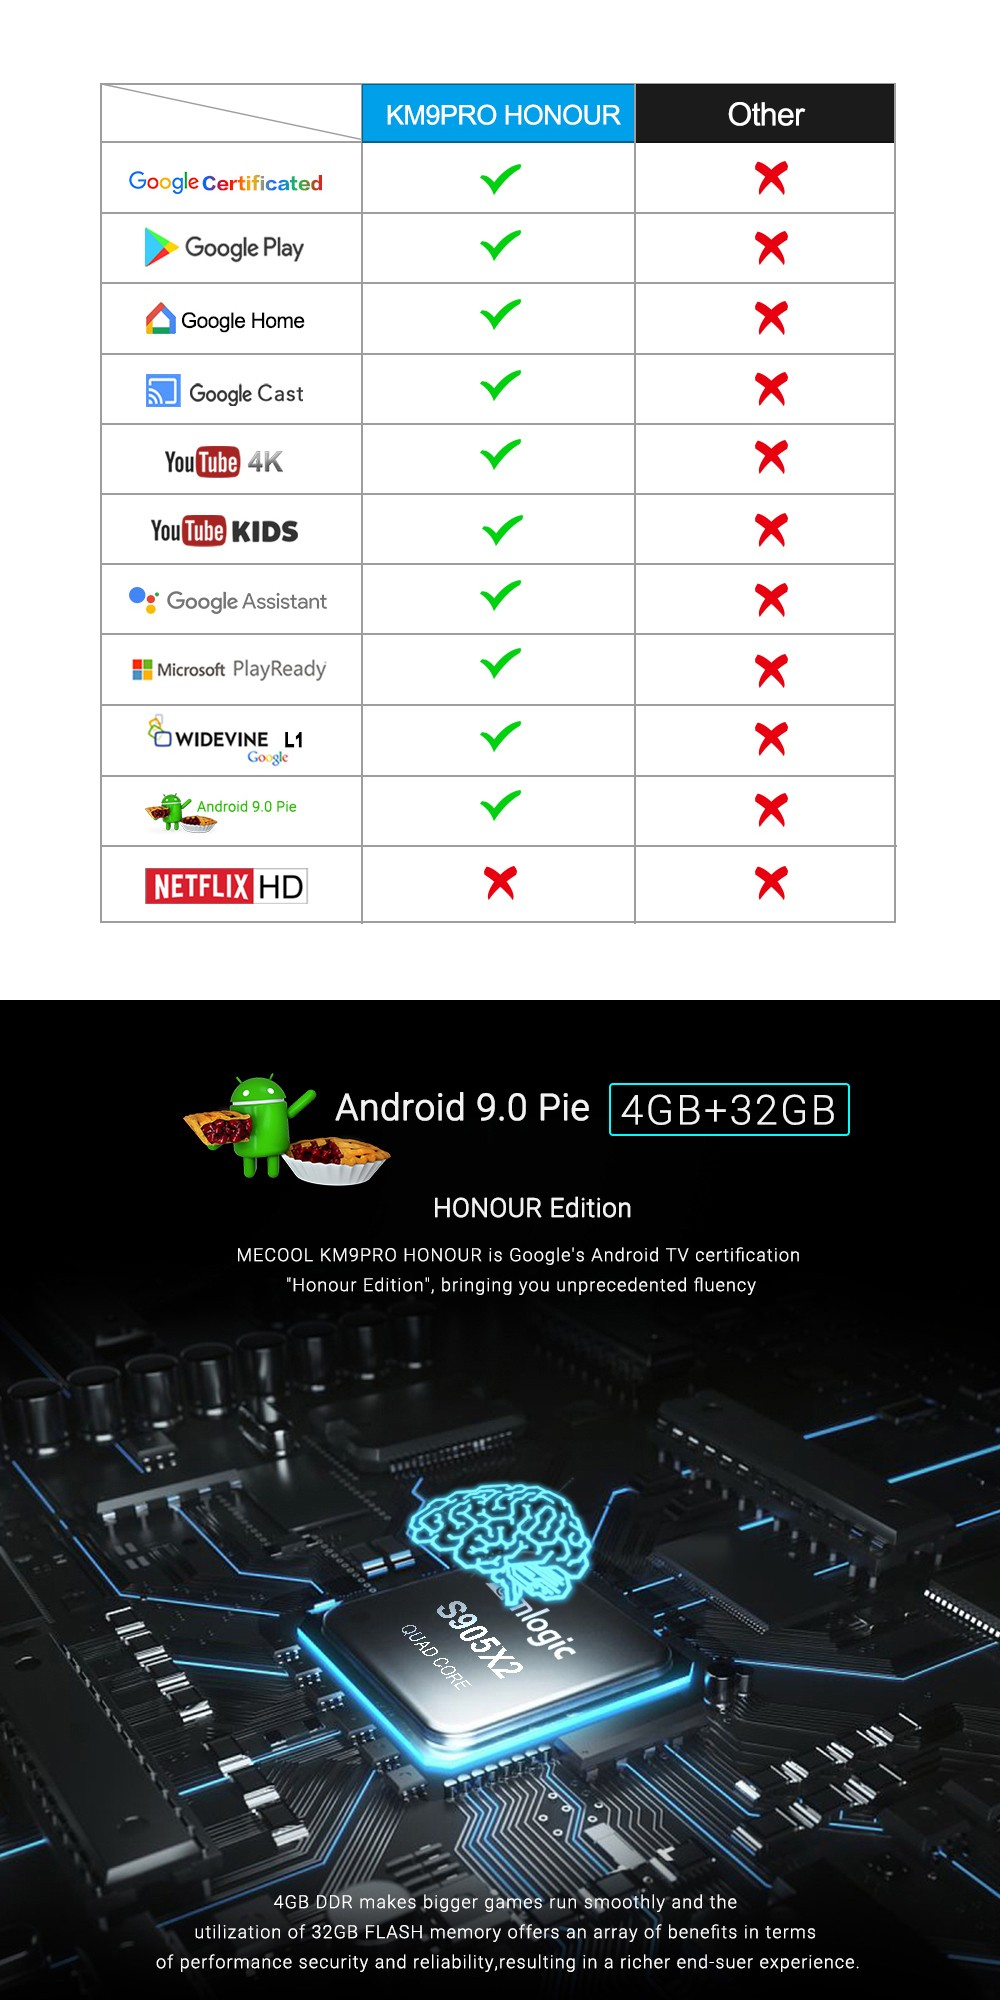 MECOOL KM9 Pro Honour di Google Certificati di Controllo Vocale TV Box- Bianca UK Spina